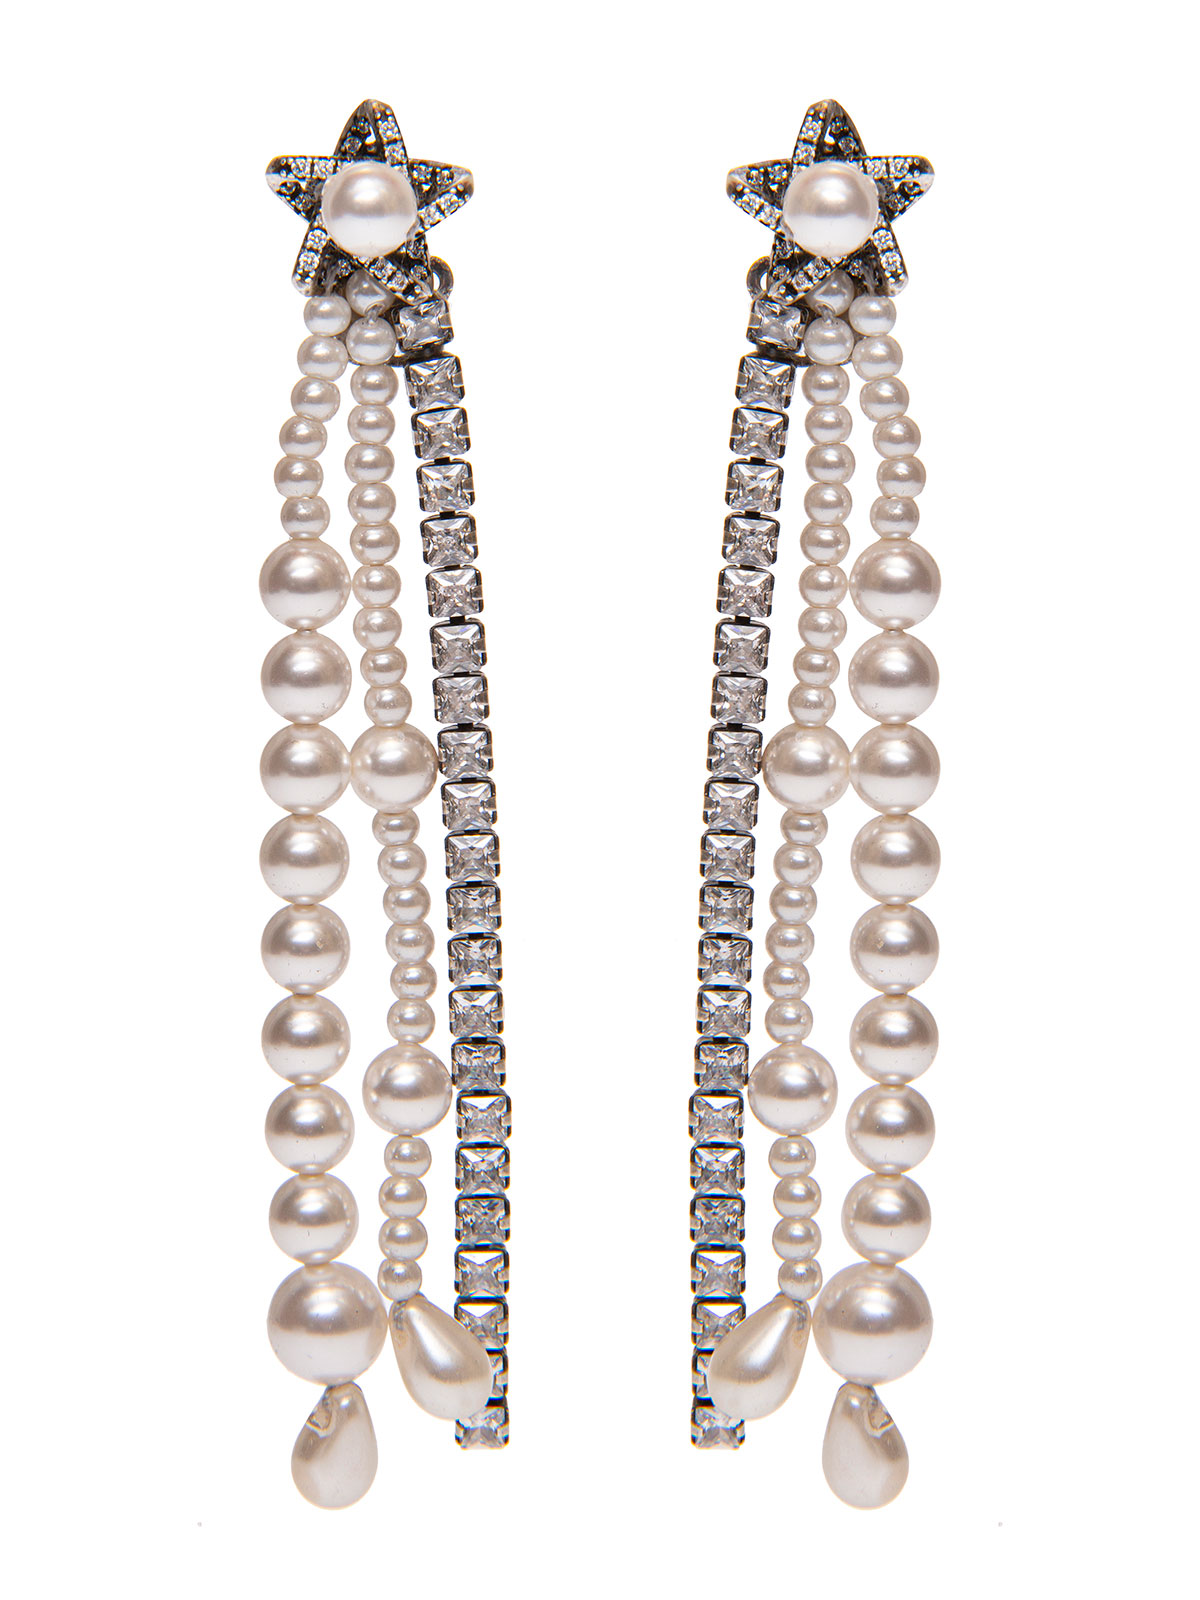 Star earrings with pendent pearls and crystals